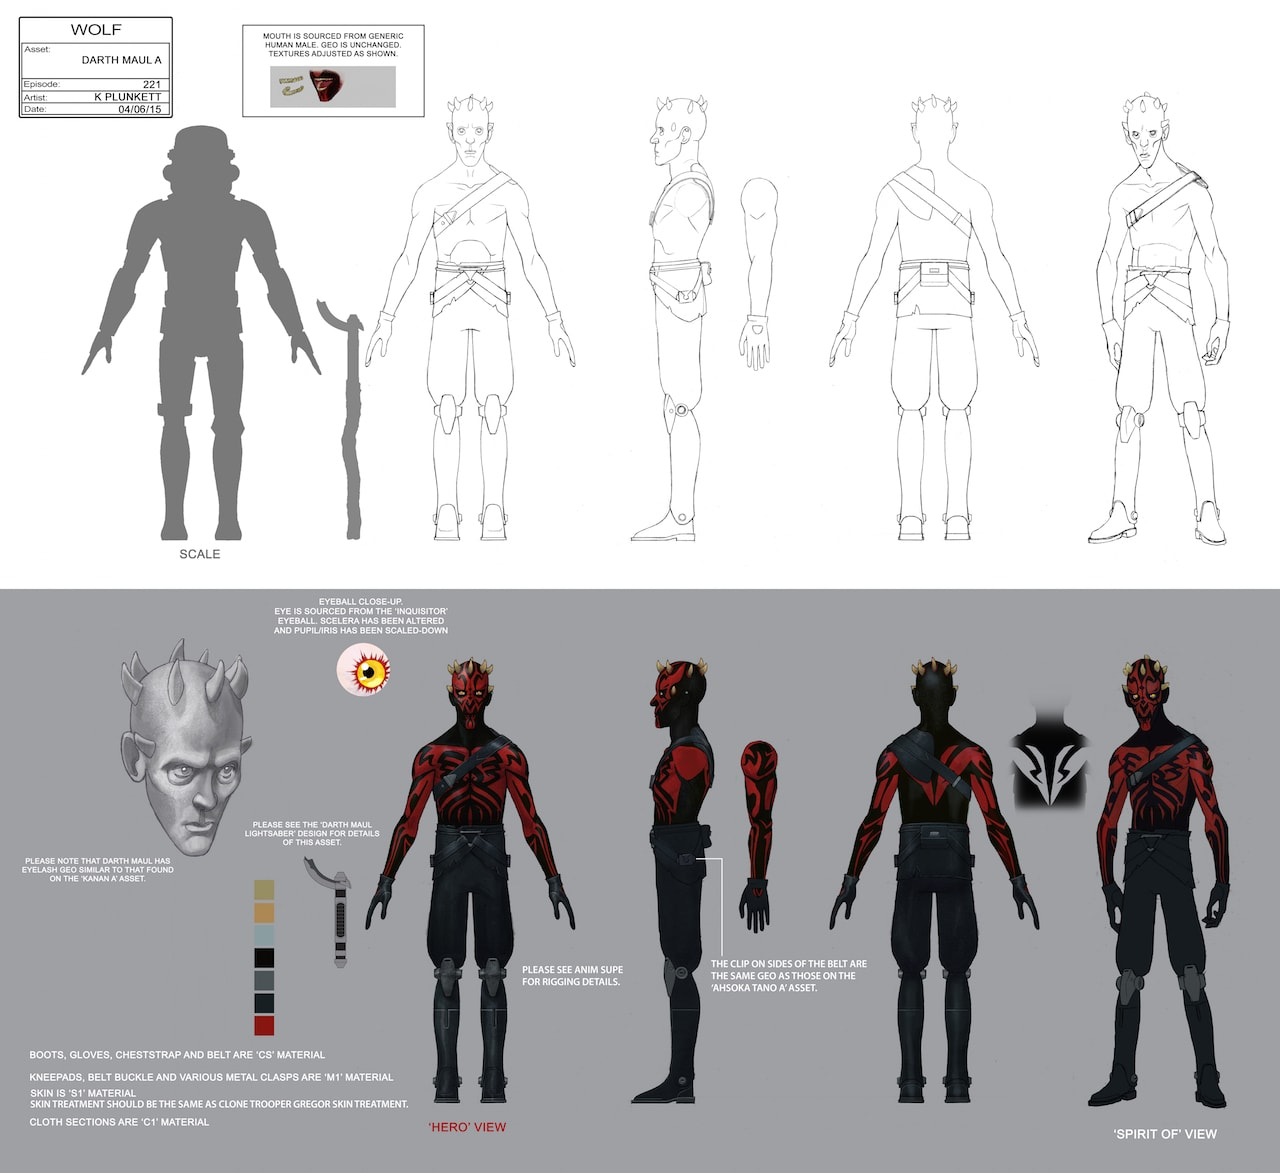 1815c394c9c Darth Maul full character illustration by Kilian Plunkett.